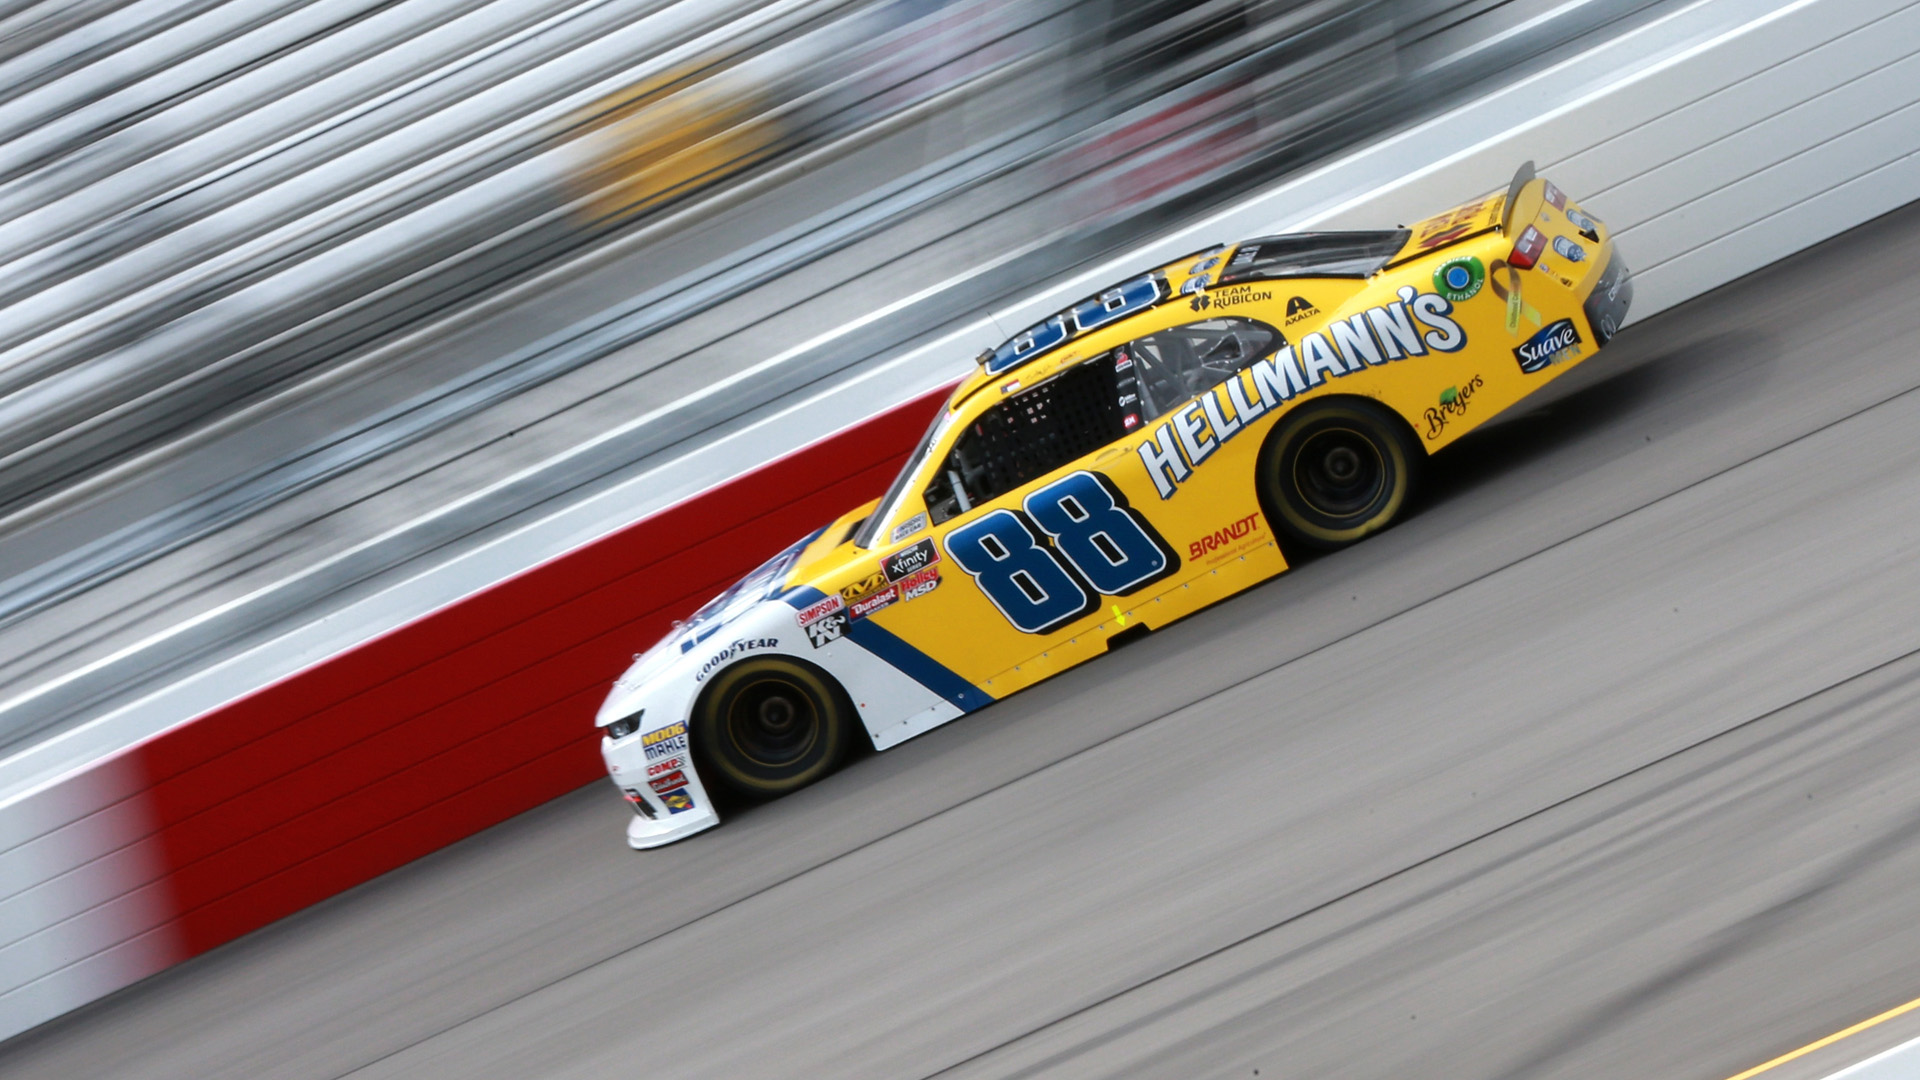 1000 Images About Dale Earnhardt Jr Nascar Racing On: Dale Jr. Says He'll Drive Xfinity Race At Darlington